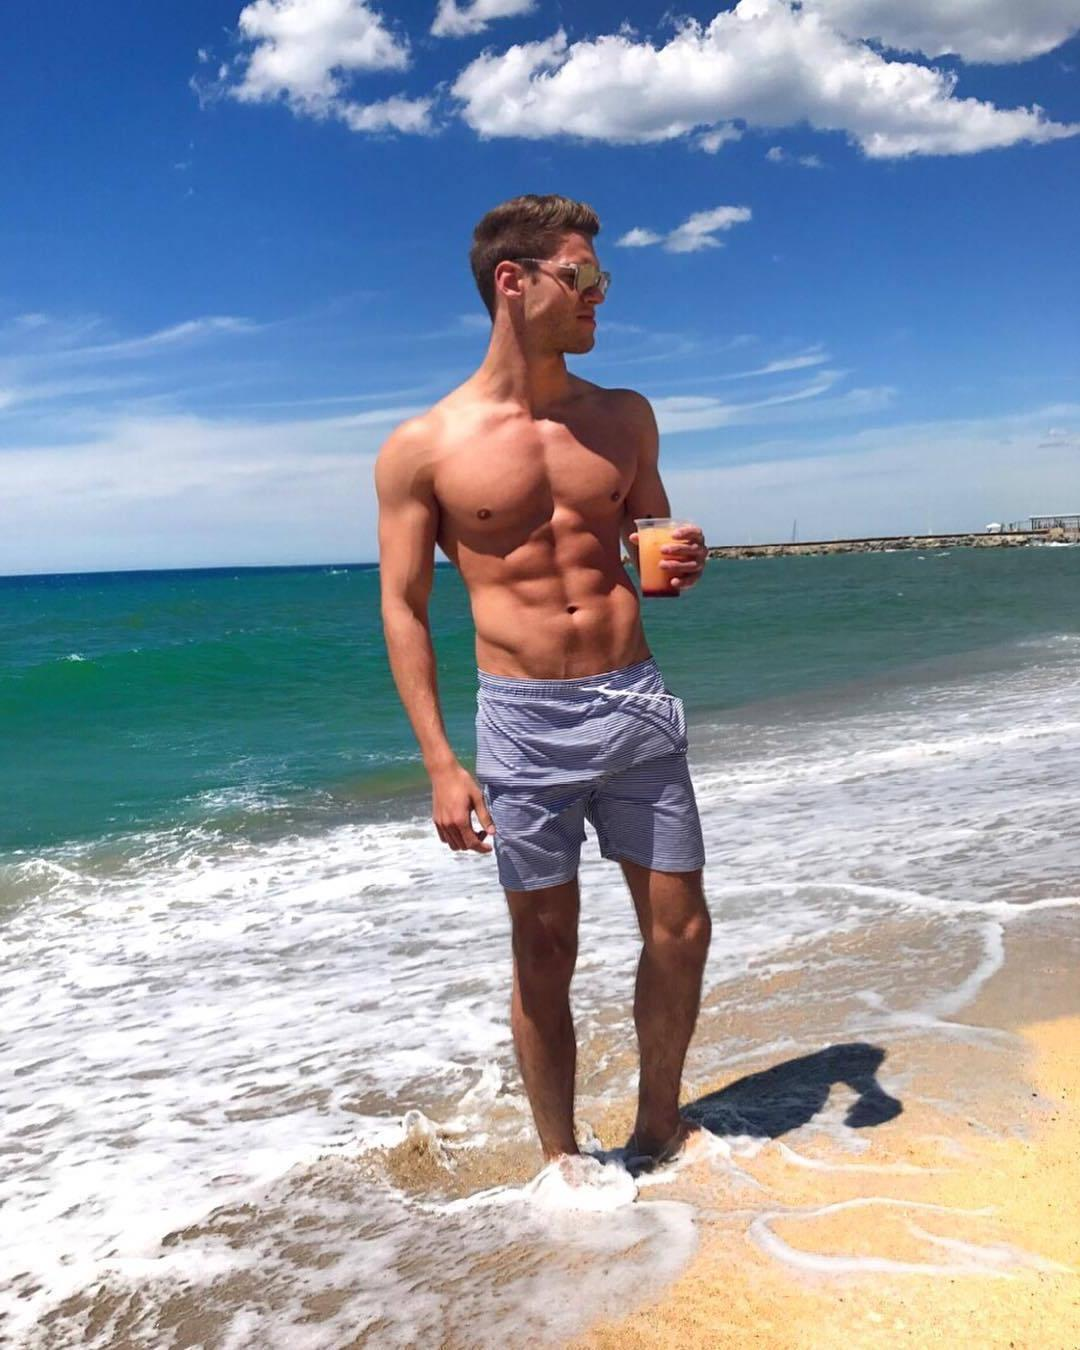 great-beach-body-shirtless-fit-boys-abs-drinks-shades